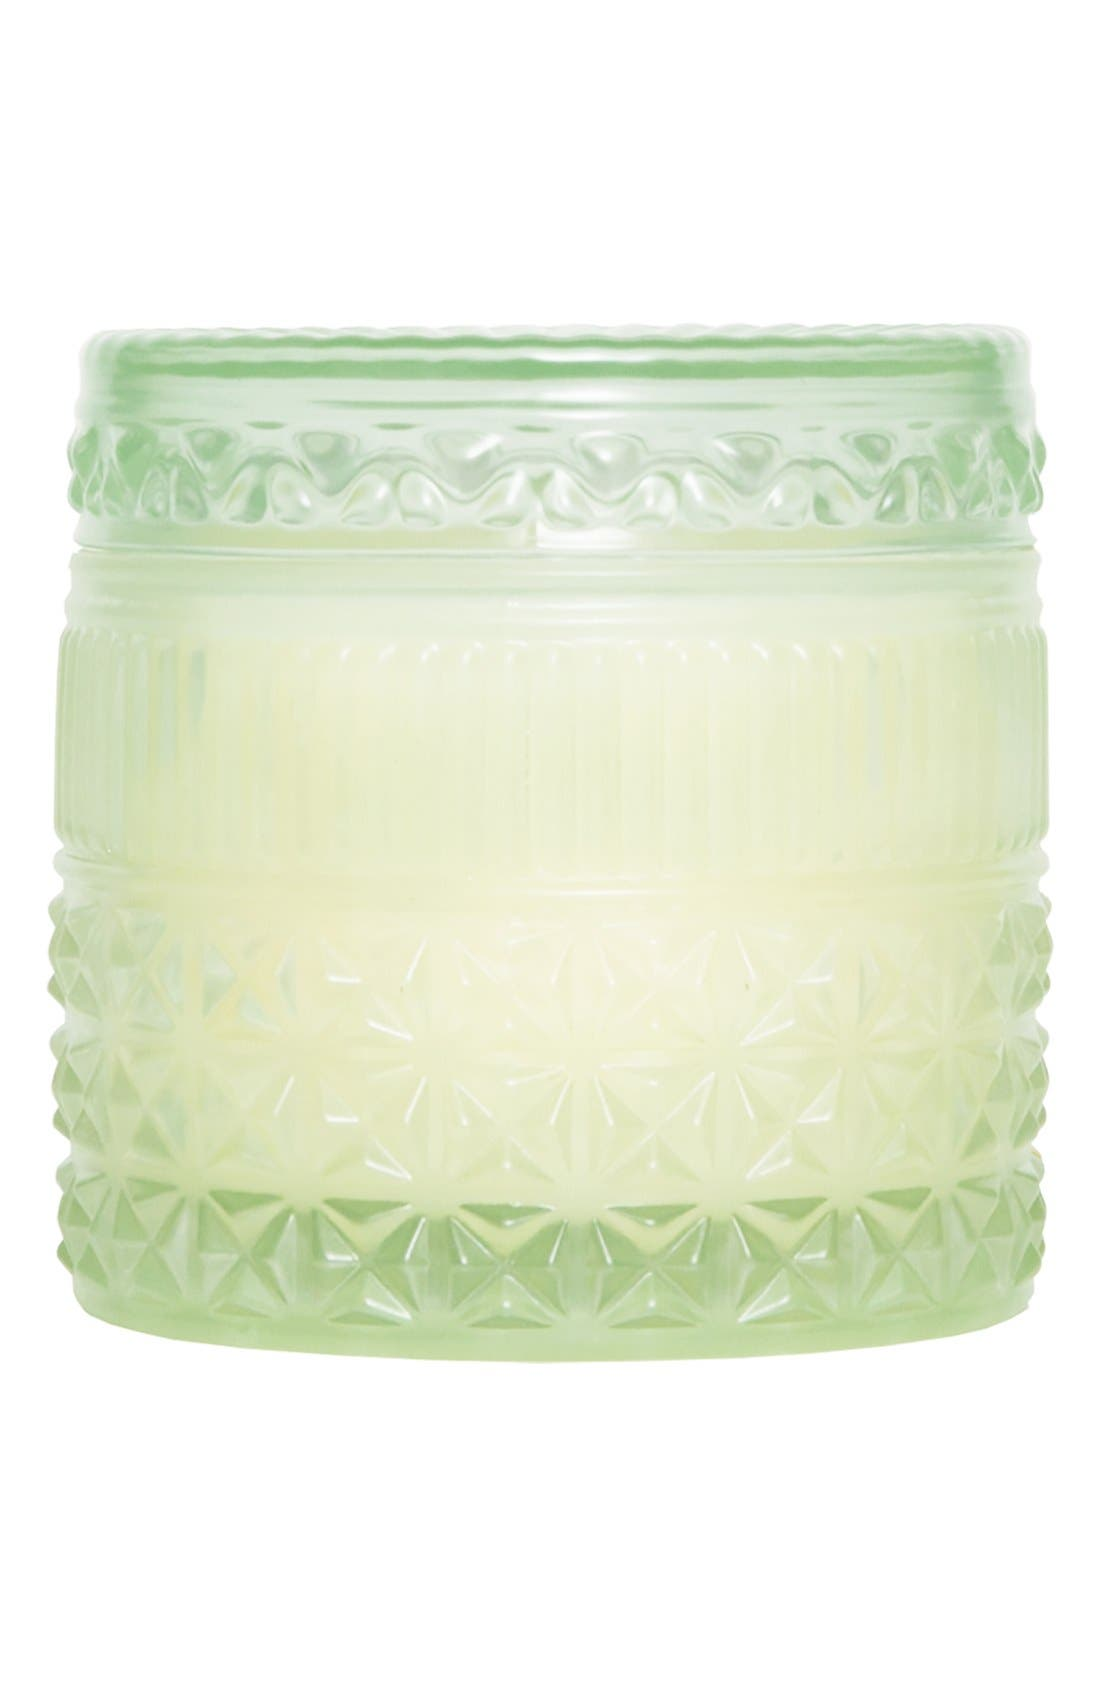 'Muse Collection' Candle,                             Main thumbnail 1, color,